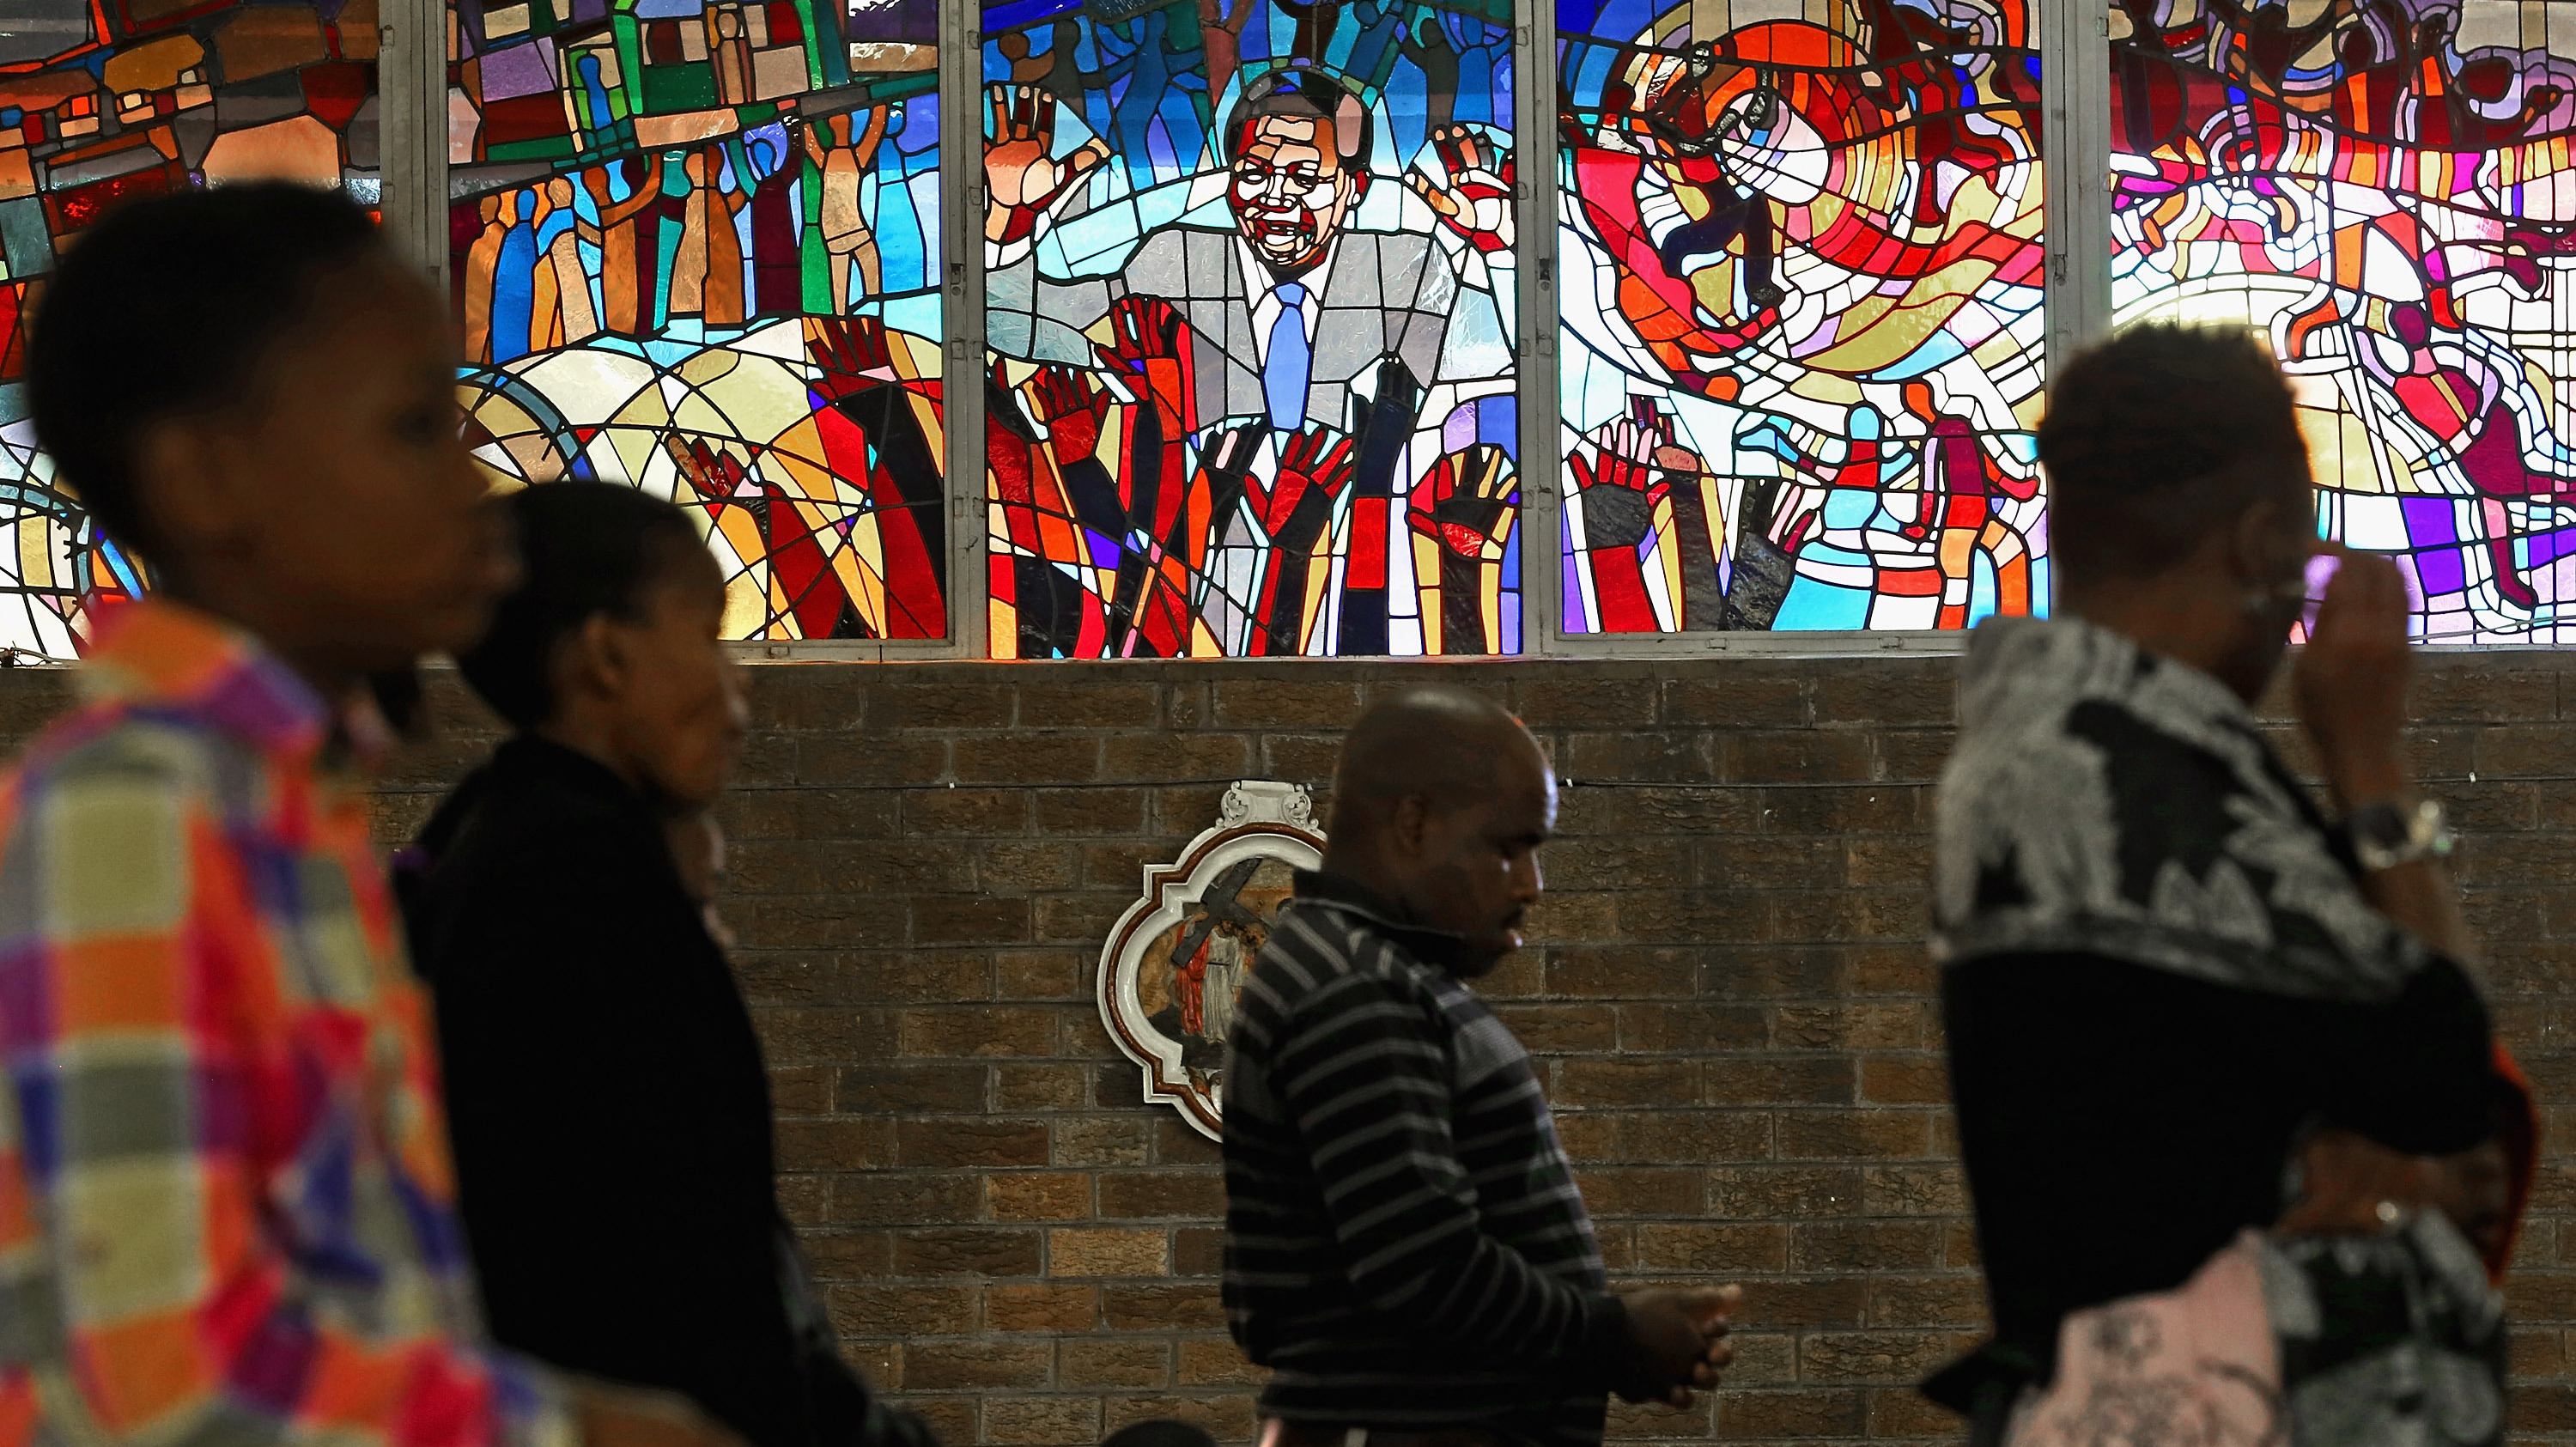 Media Focus On Ailing Mandela Is Not 'The African Way'